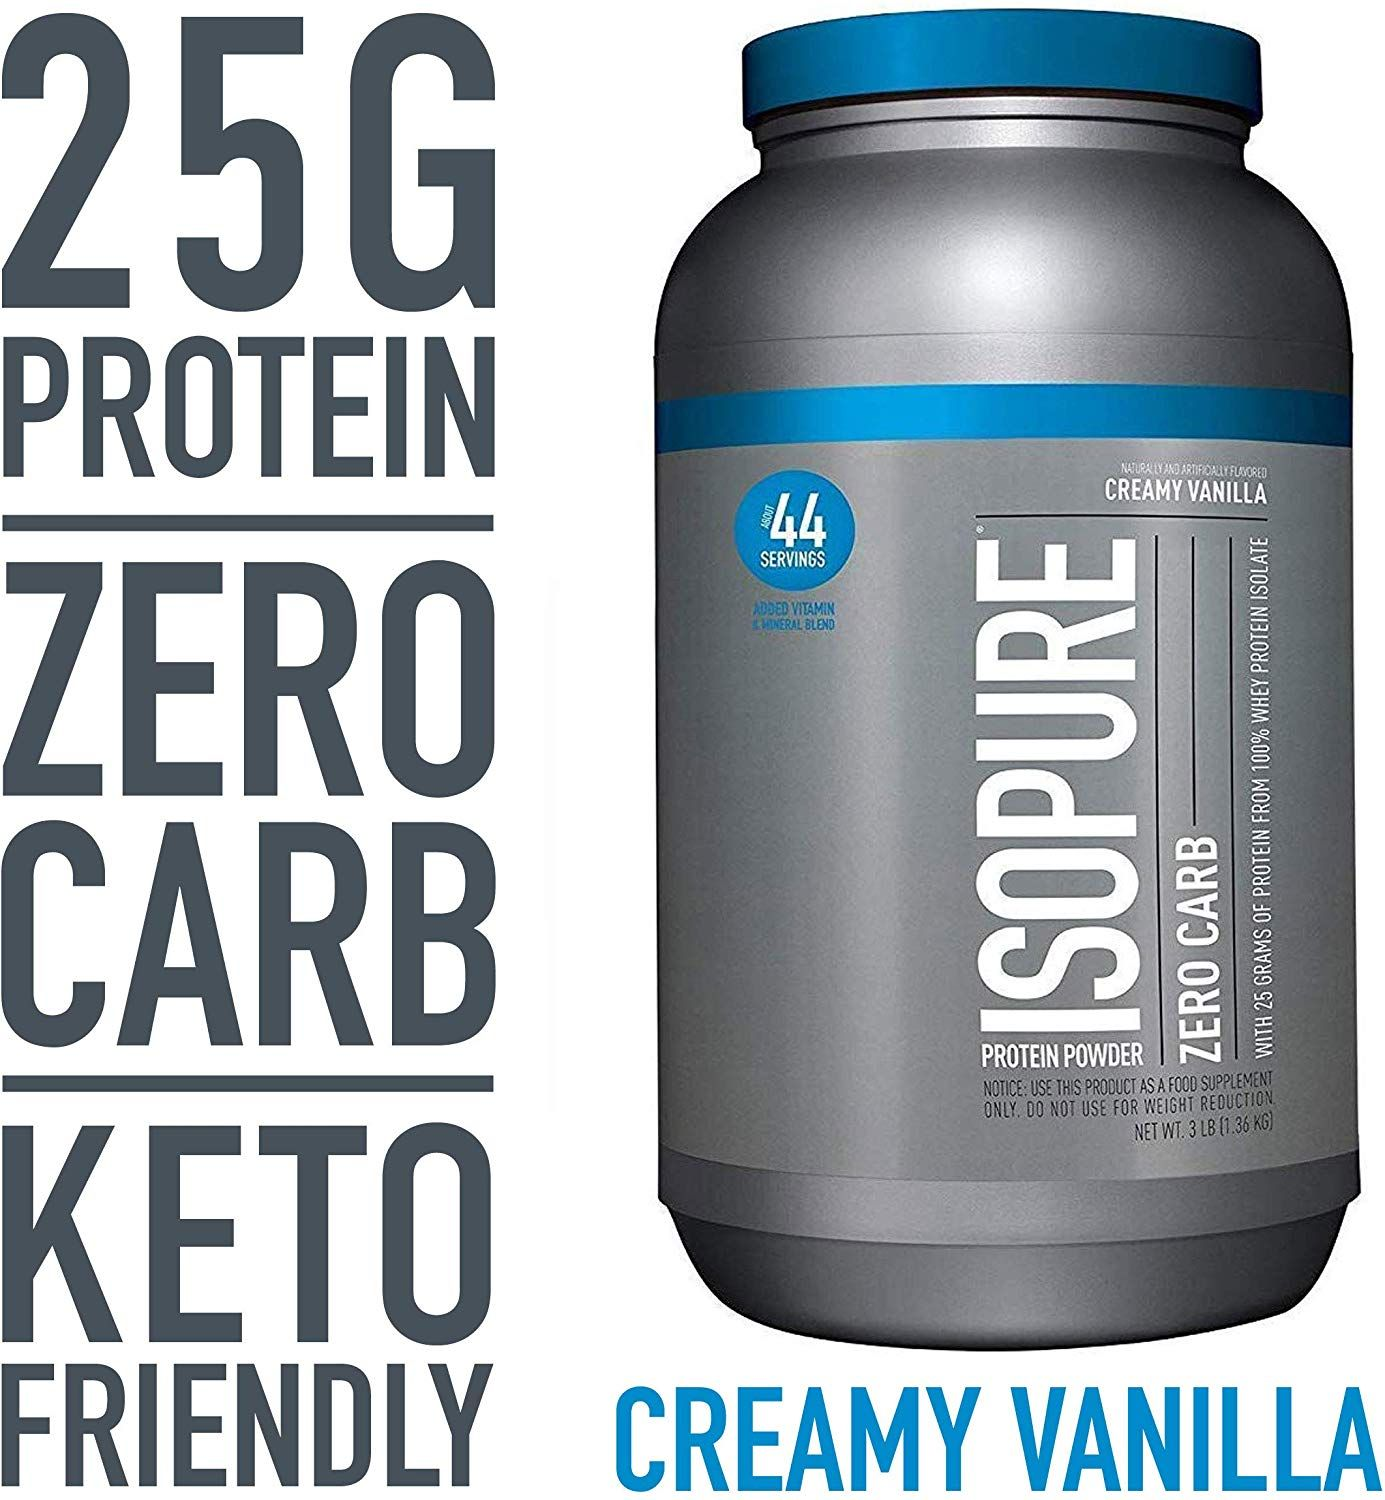 100% WHEY PROTEIN ISOLATE a high quality protein source providing 25 grams per serving to support mu...